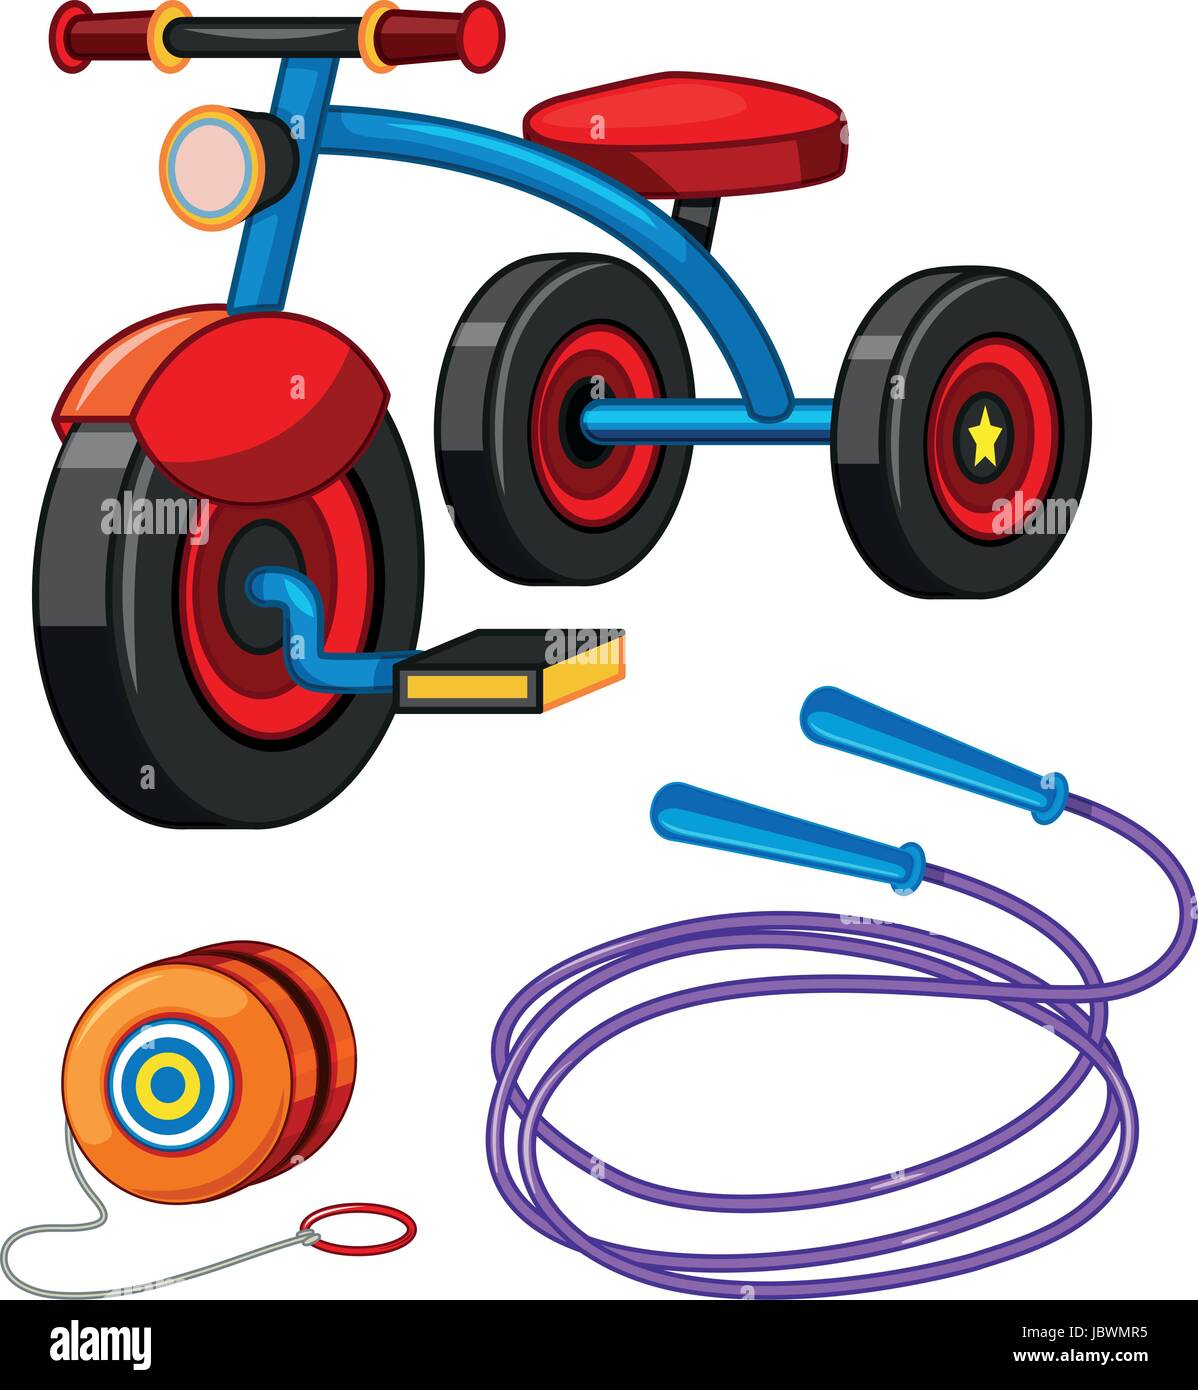 Tricycle and other toys illustration - Stock Image